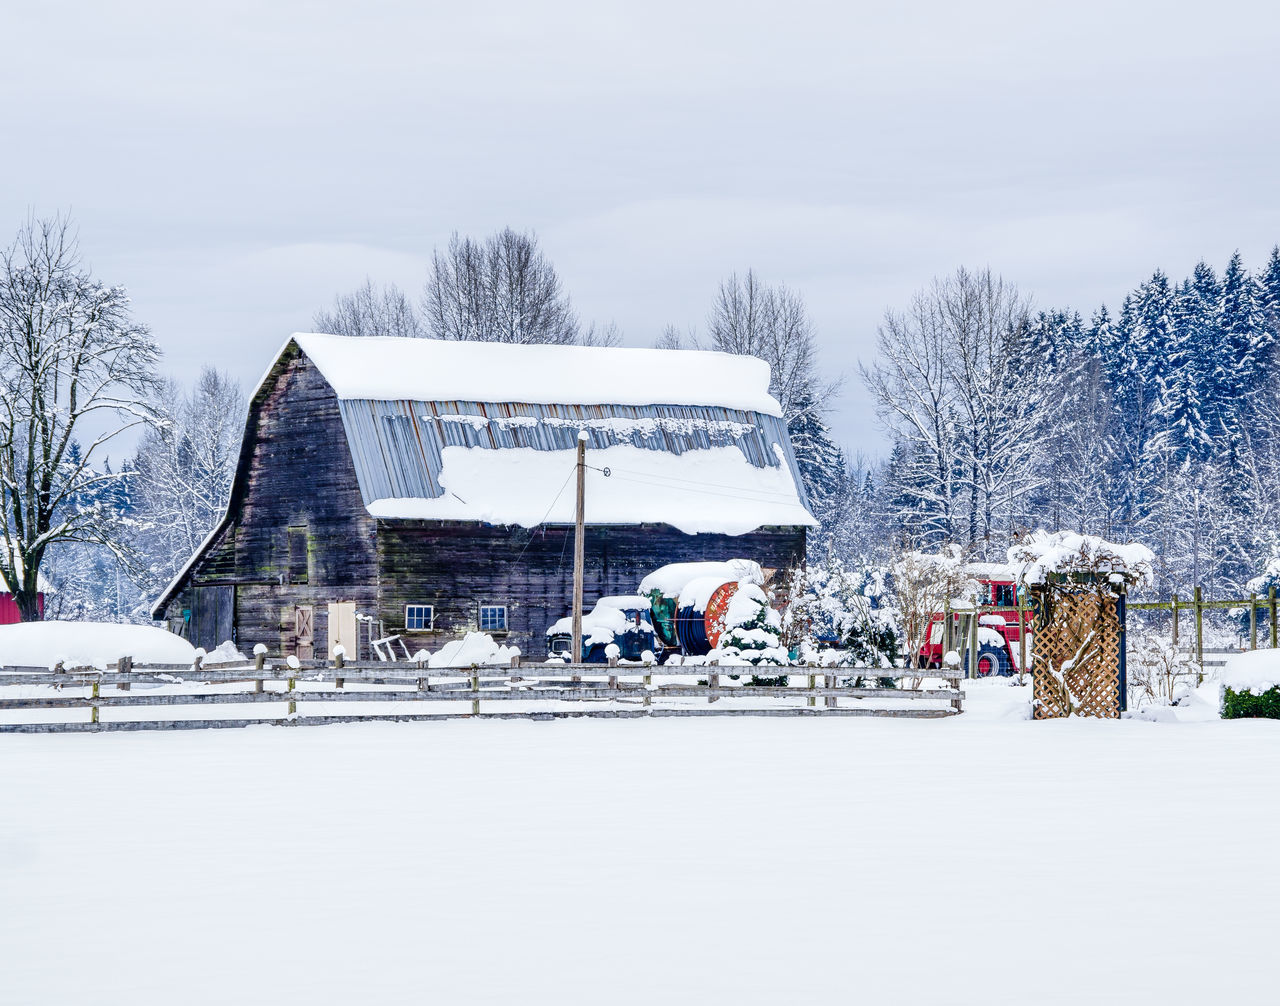 Architecture Bare Tree Barn City Cold Temperature Day Farm Life Frozen Frozen Water Ice Ice Rink Nature Outdoors People Polar Climate Sky Snow Snowflake Snowing Travel Destinations Tree White Color Winter Winter Sport